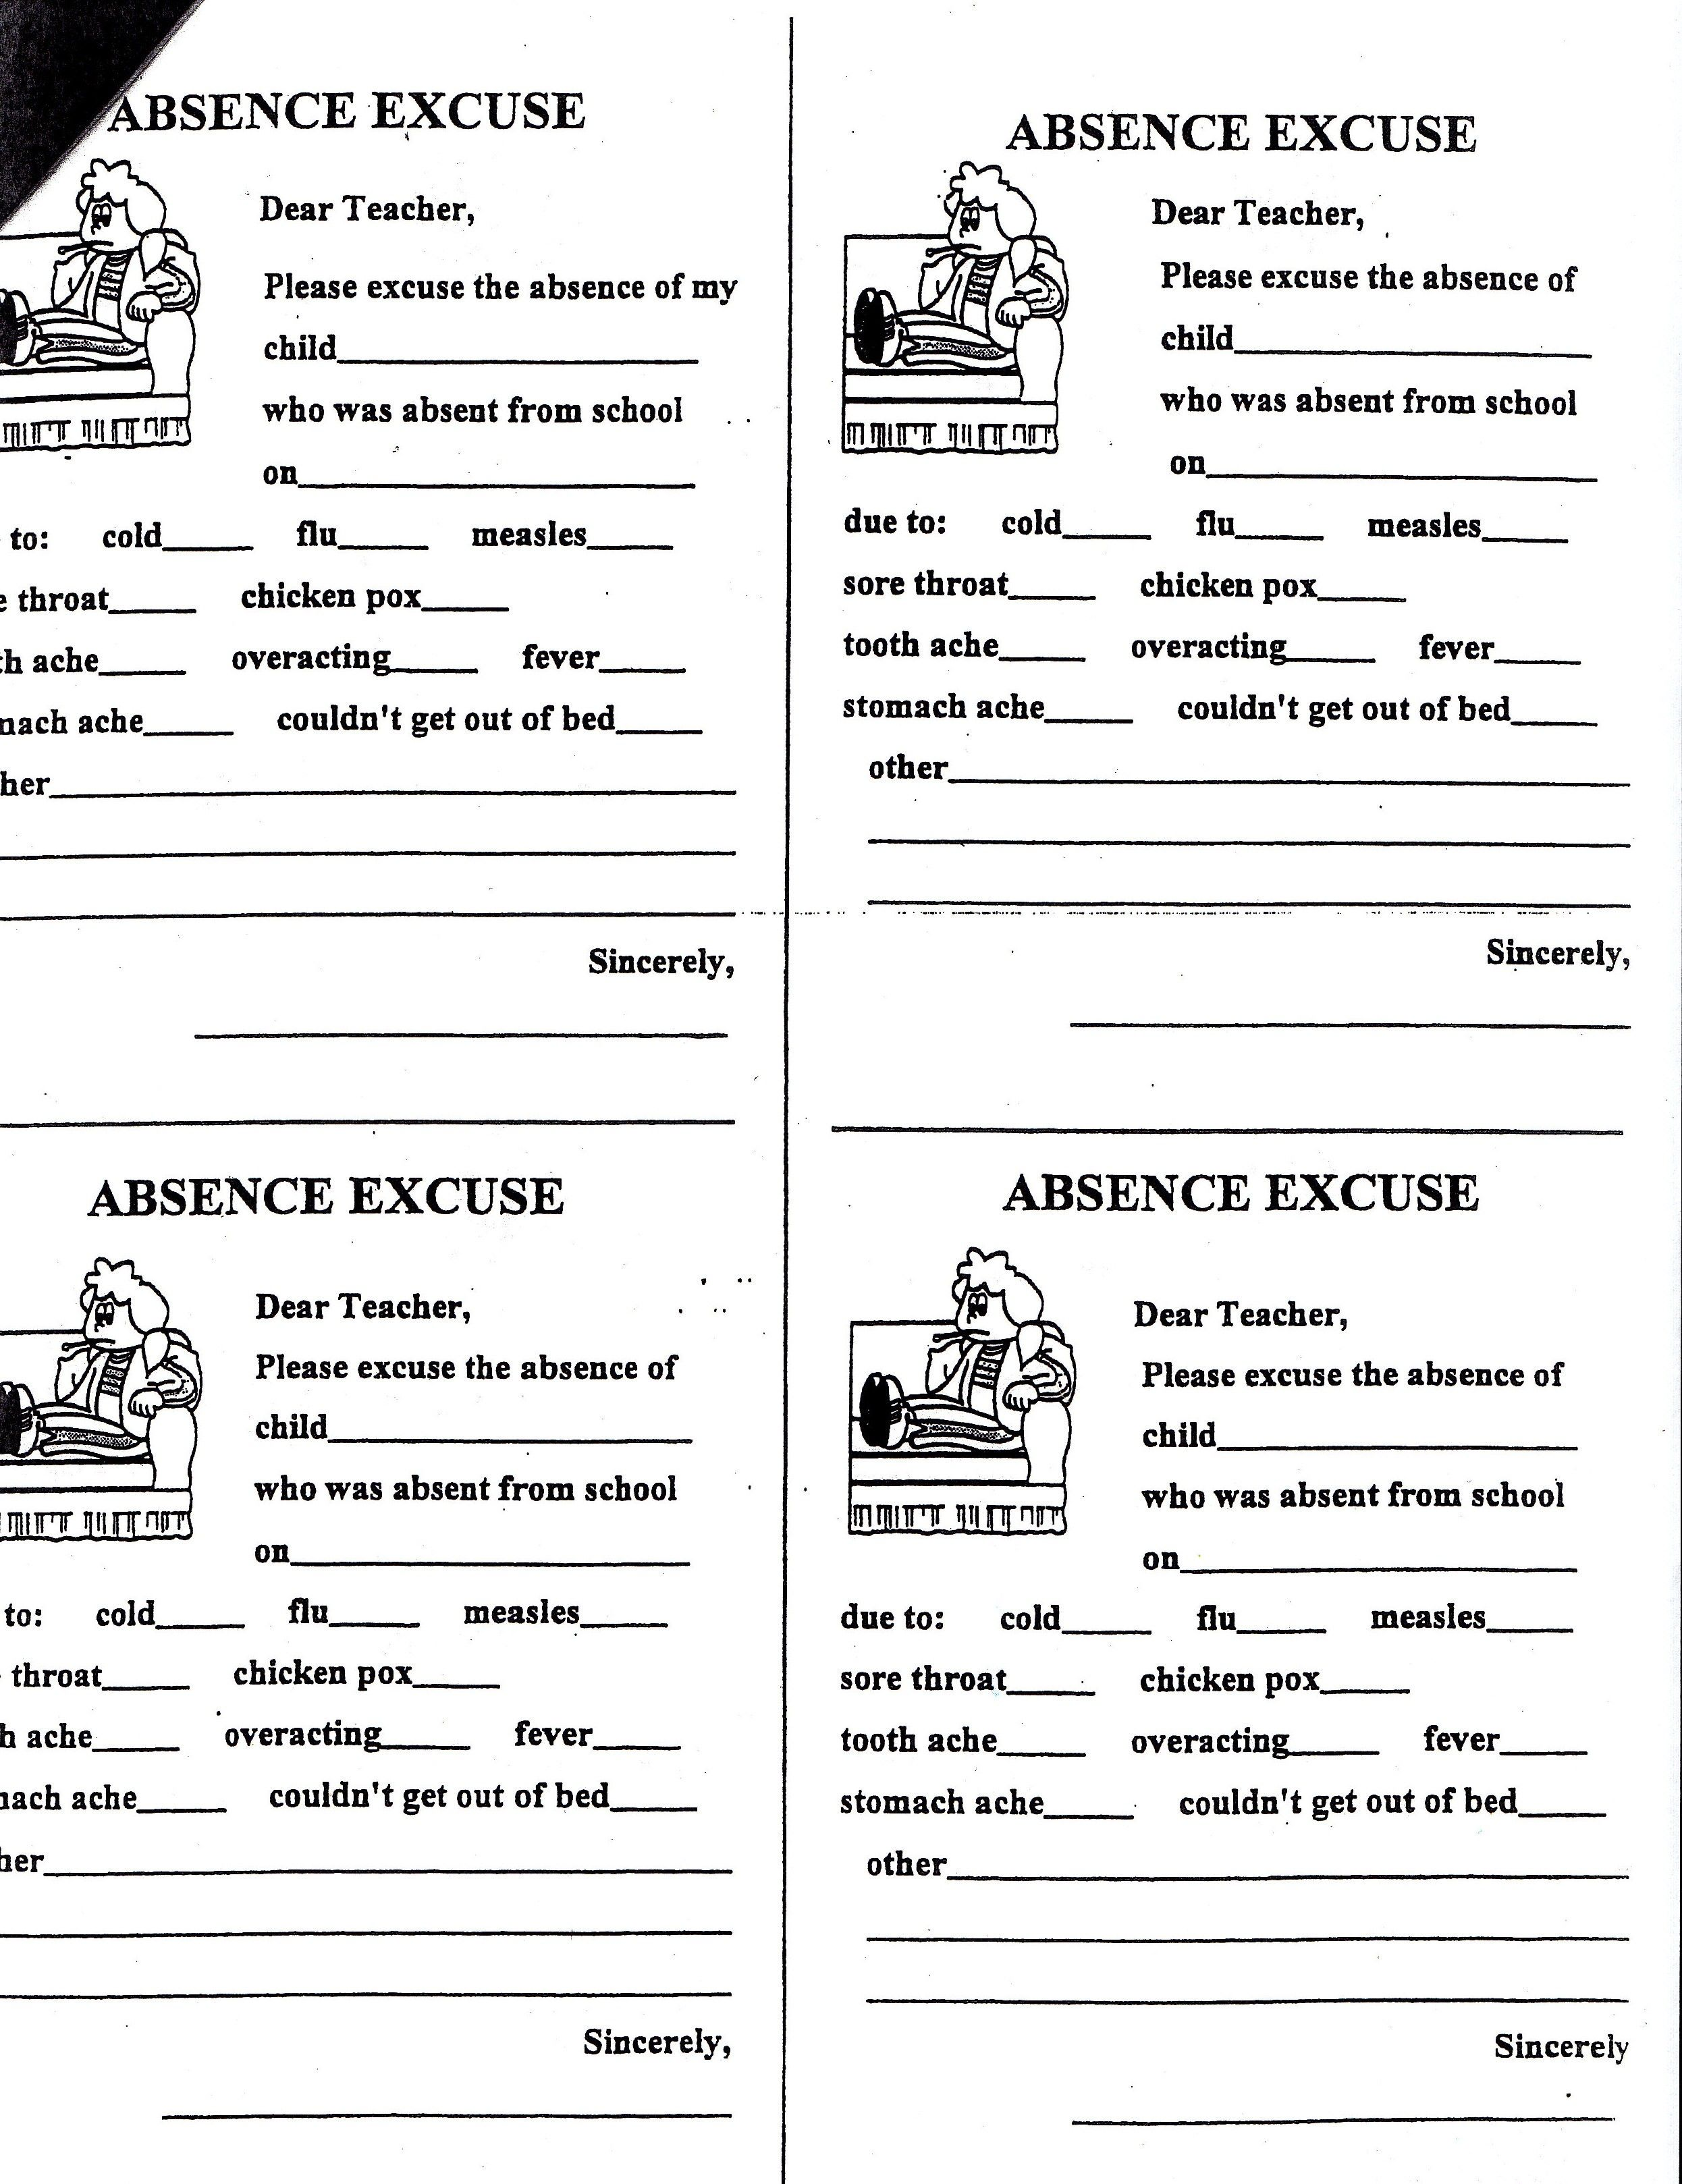 sick note template for school - school absence excuse letter sample homelightingcowarning